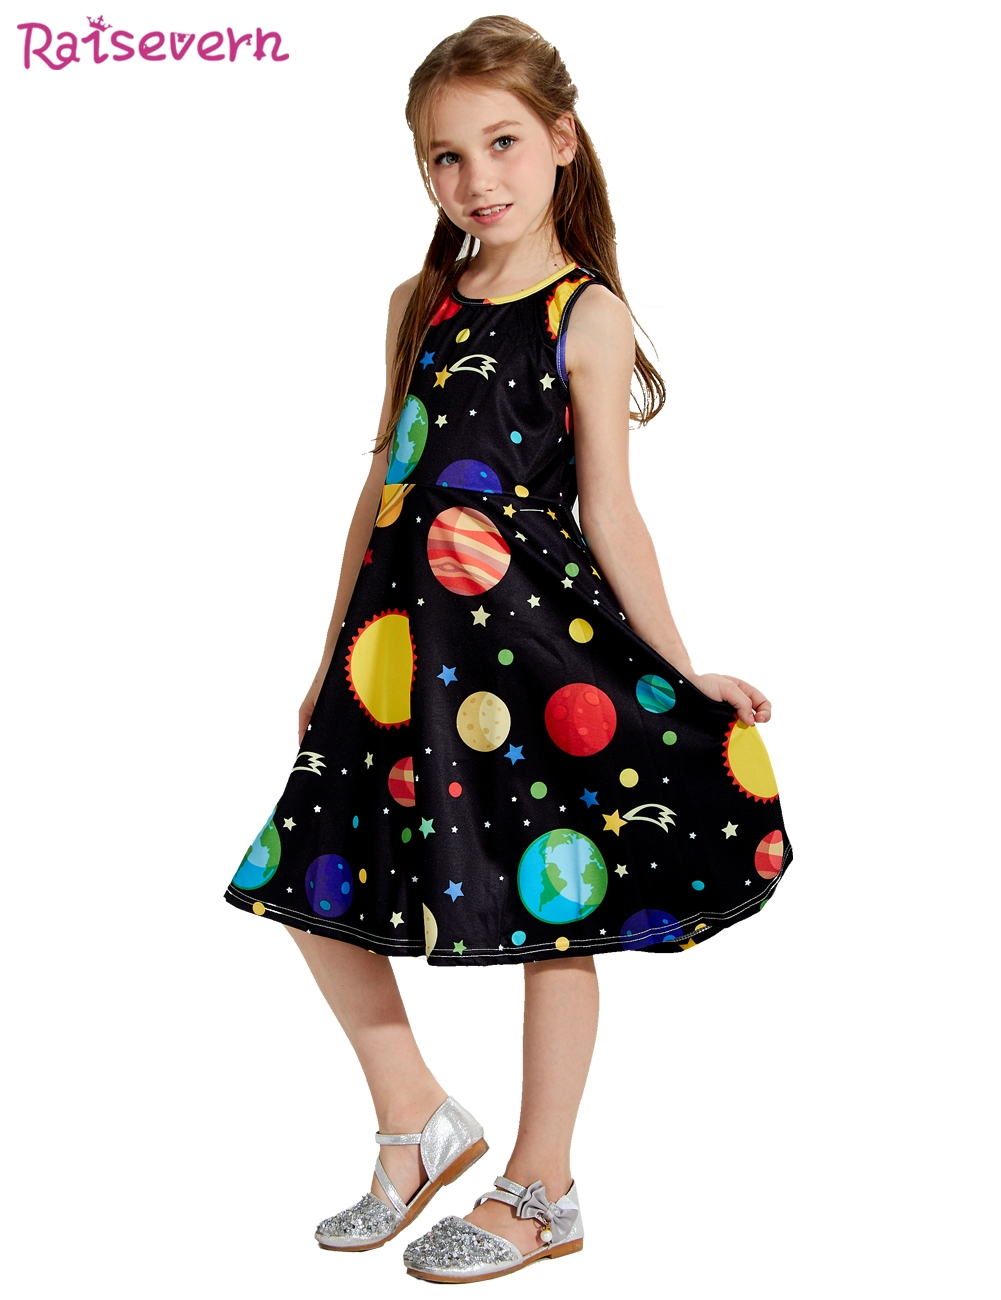 Summer Baby Girl Dress Fashion Kids Dresses Girls Cartoon Sun Moon Earth Stars Outer Space Starry Sky Print Children Clothing summer baby girls dress ice cream print 100% cotton toddler girl clothing cartoon 2018 fashion kids girl clothes infant dresses